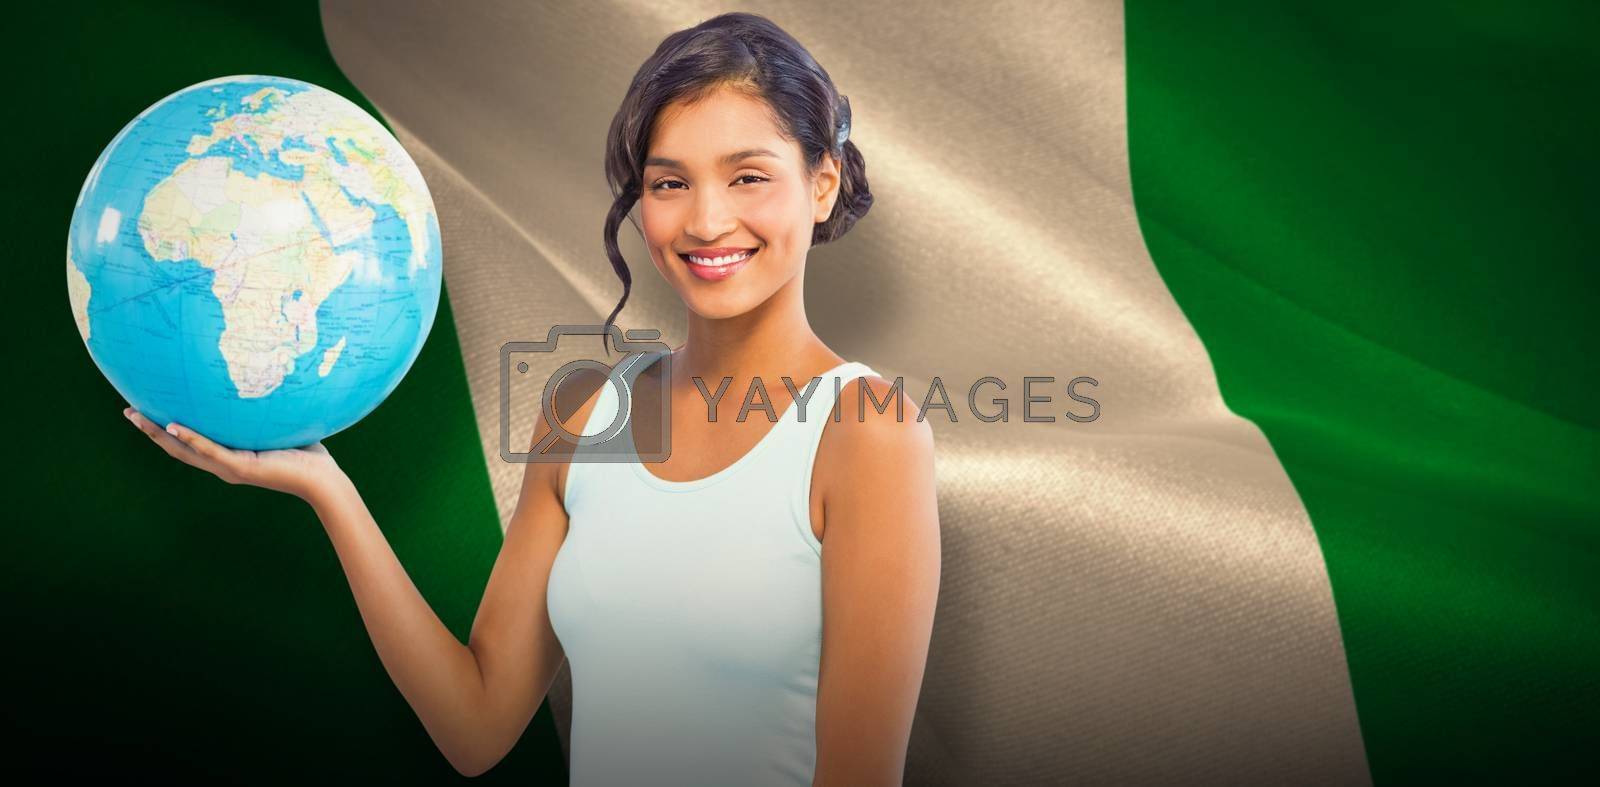 Composite image of pretty woman showing globe by Wavebreakmedia